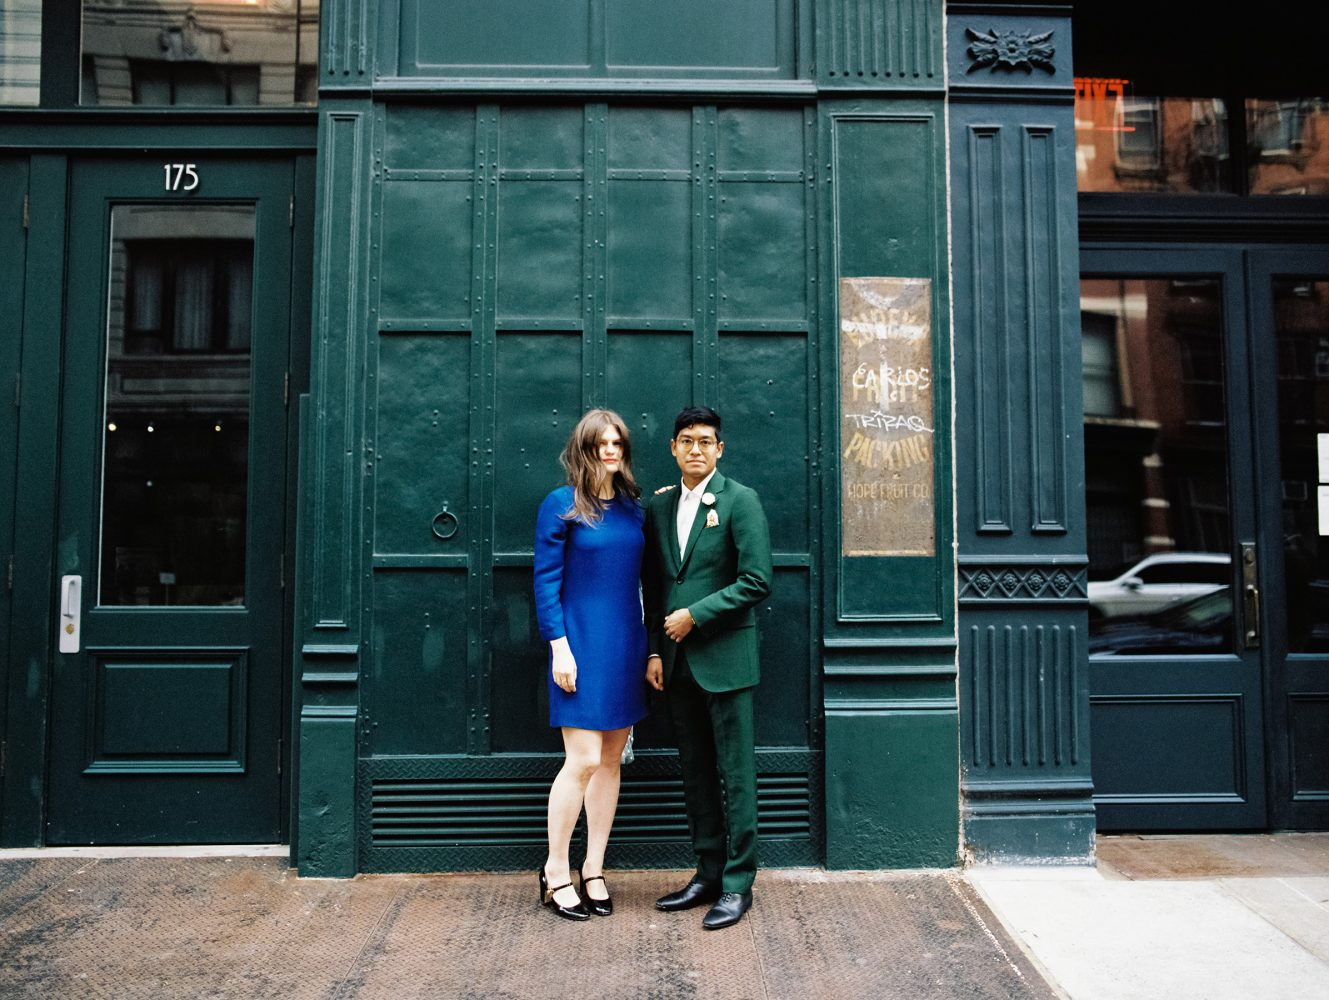 Bride and Groom wearing Celine and Gucci ONONA New York wedding photographer film